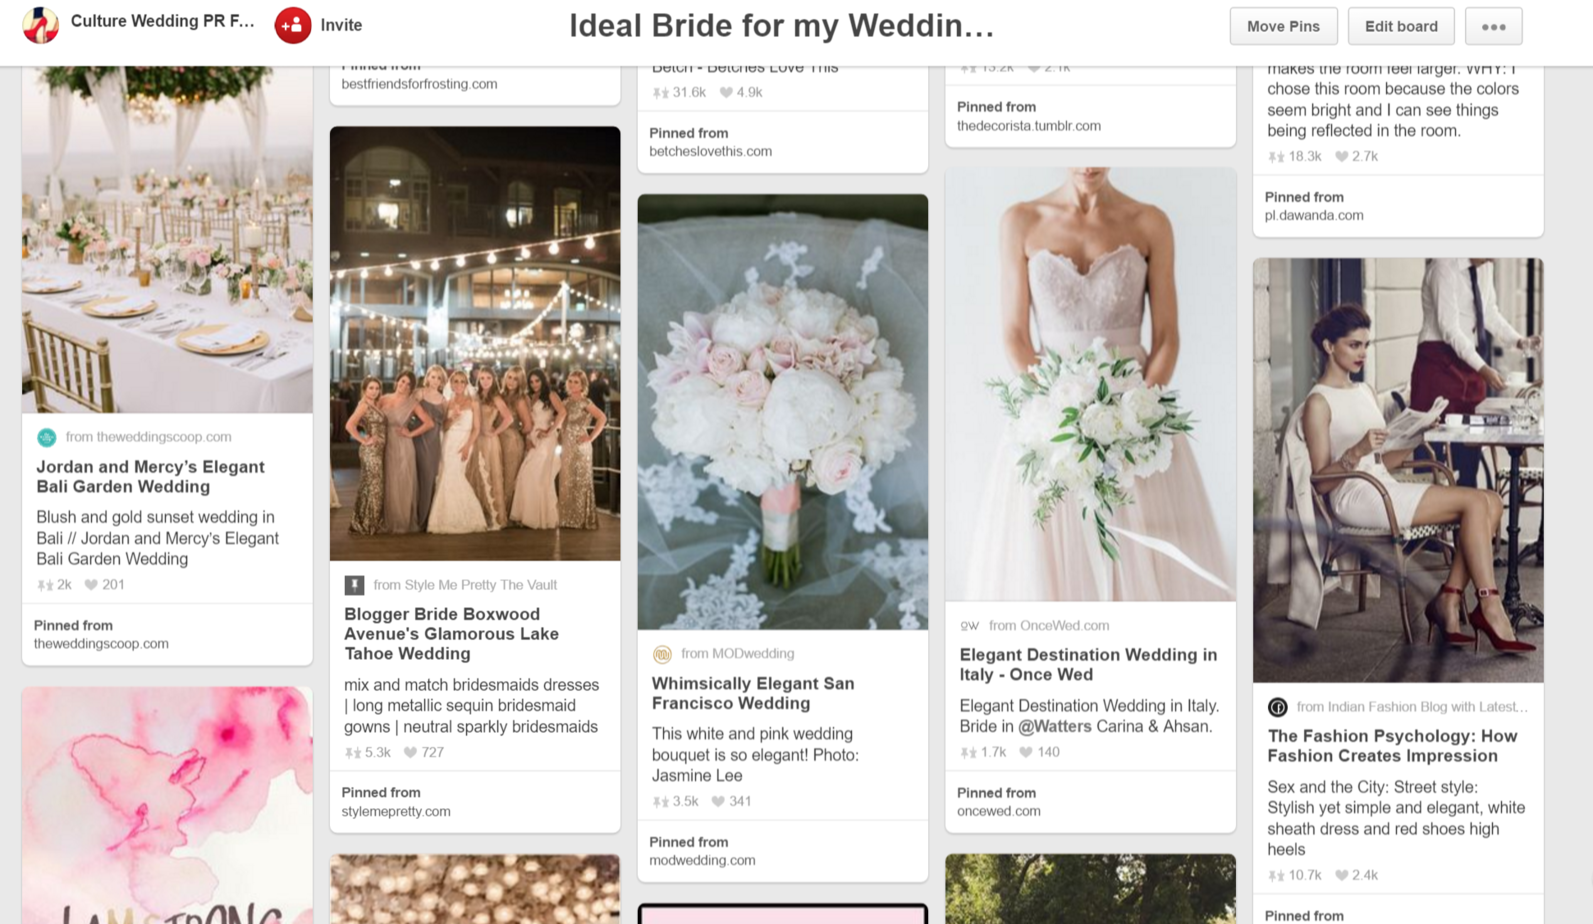 Finding your ideal Bride